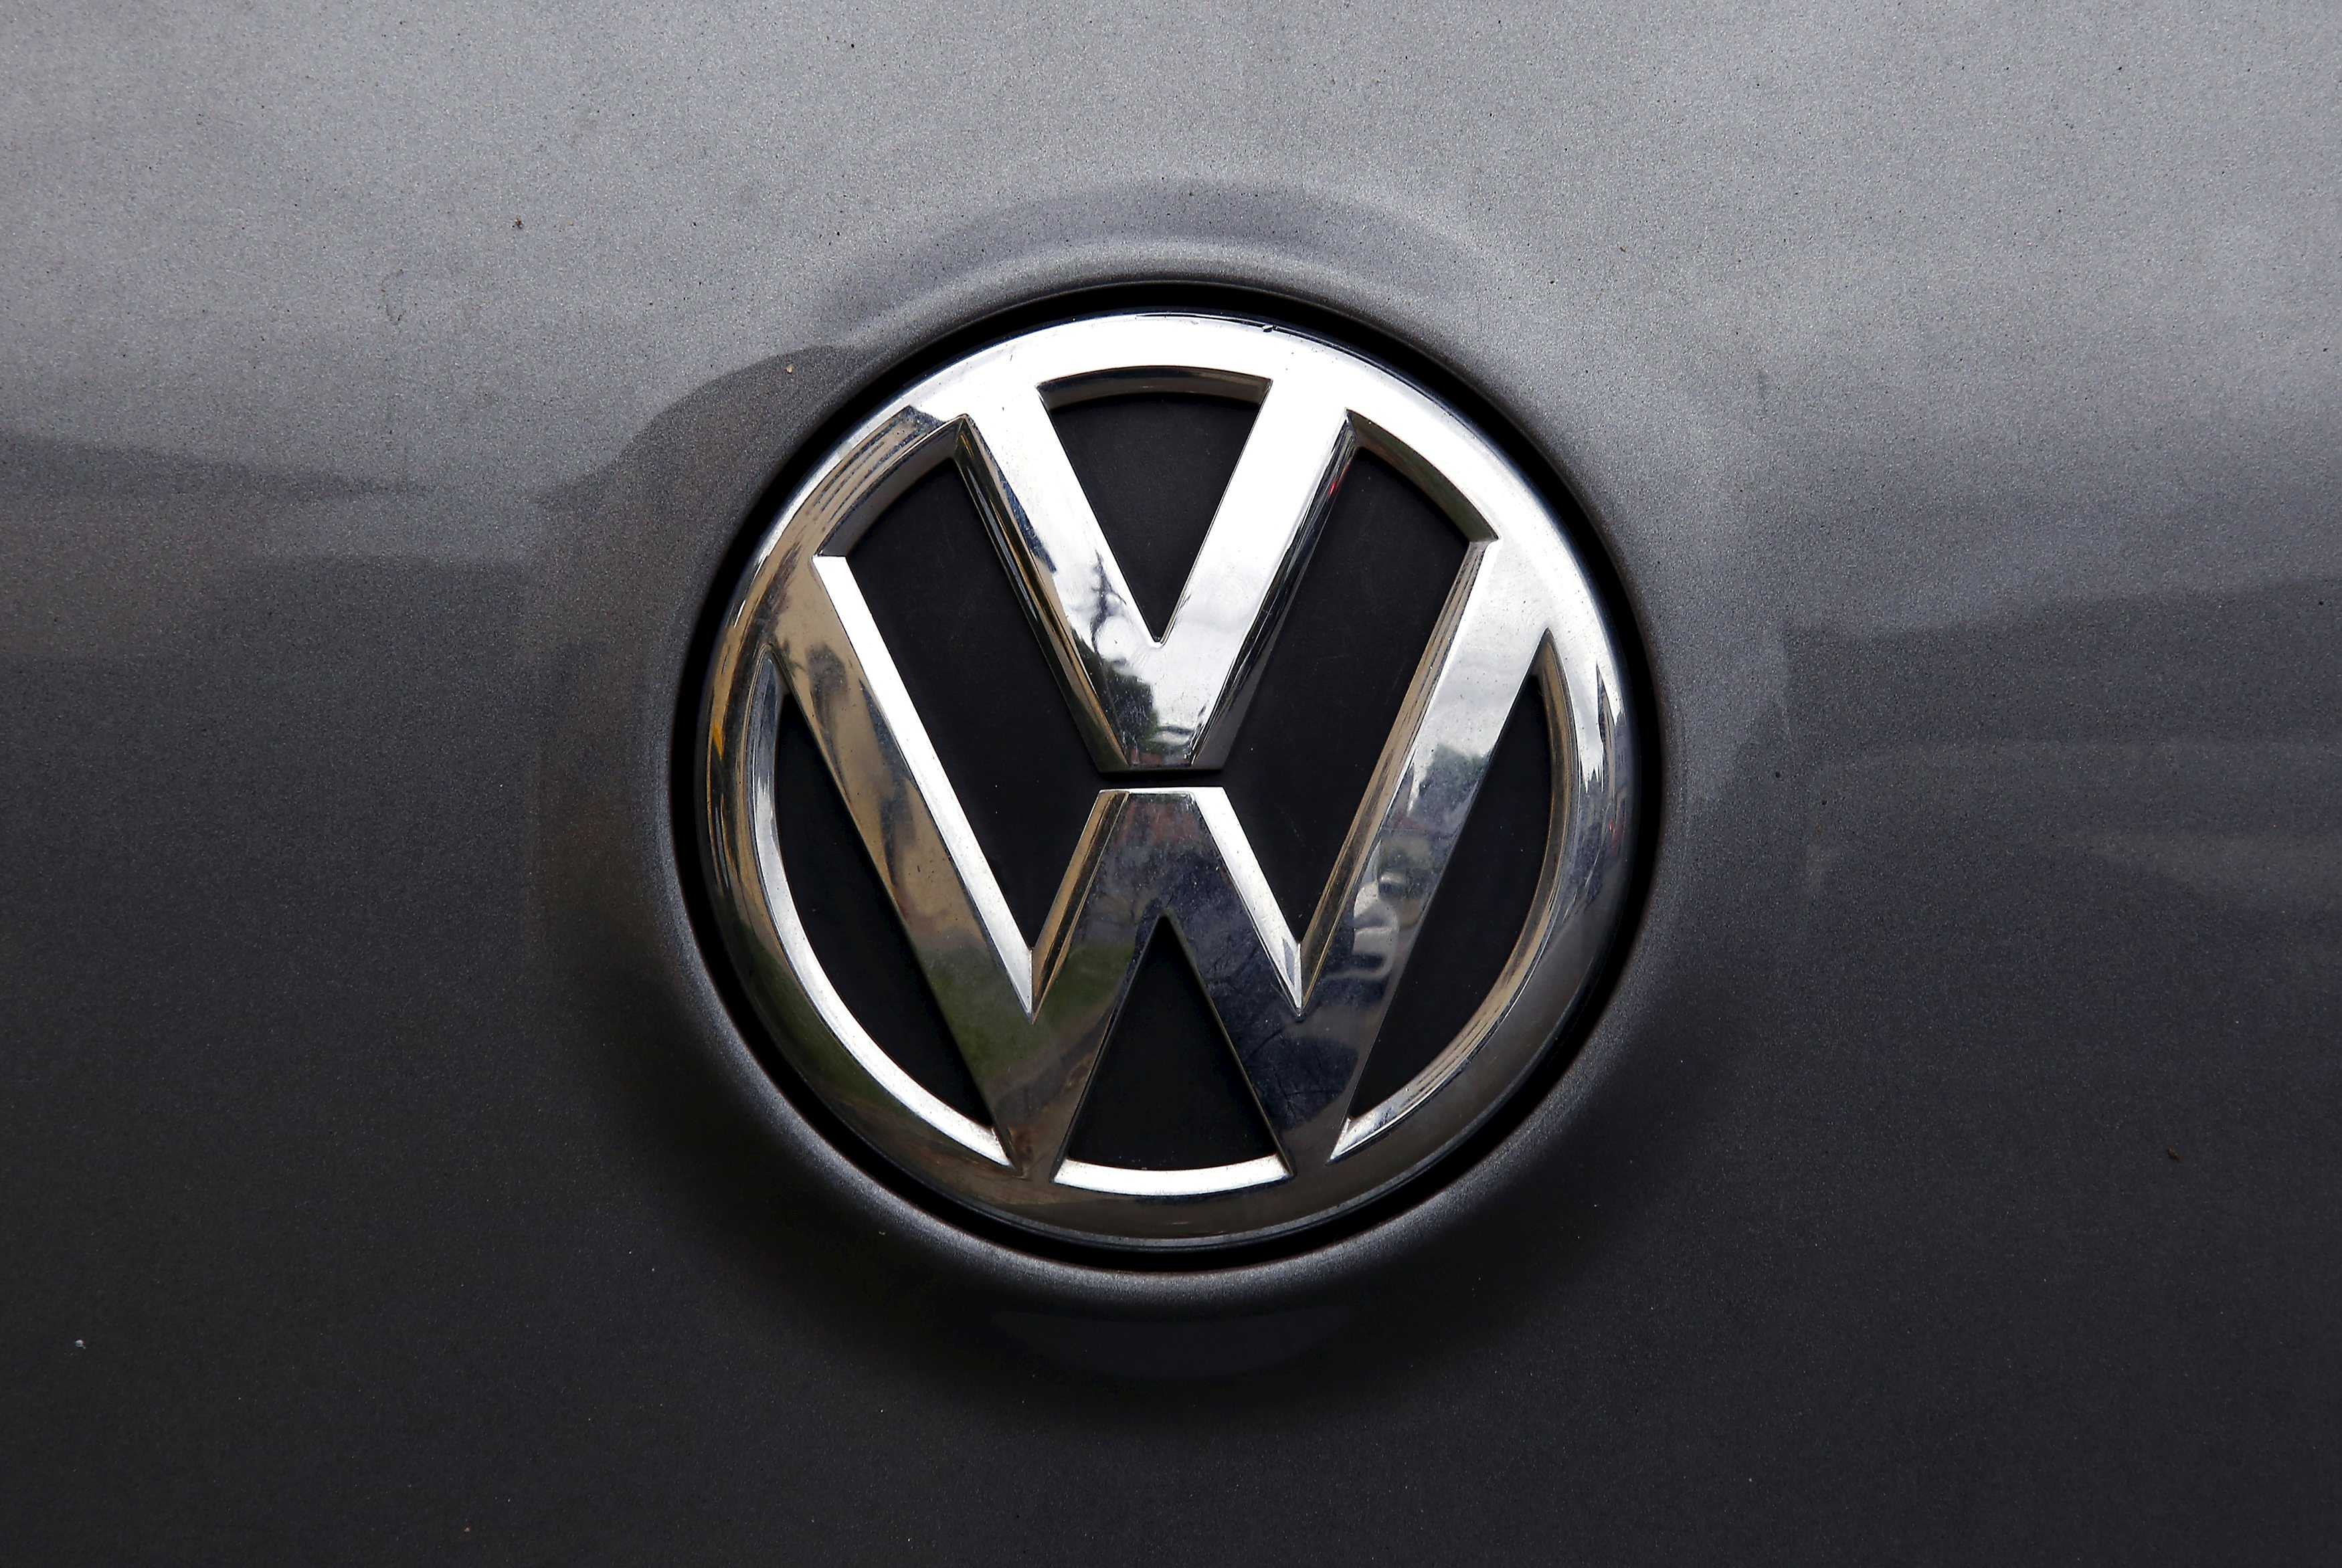 A Volkswagen logo is seen on one of the German automaker's cars in a street in Sydney, Australia, October 8, 2015. Photo: Reuters